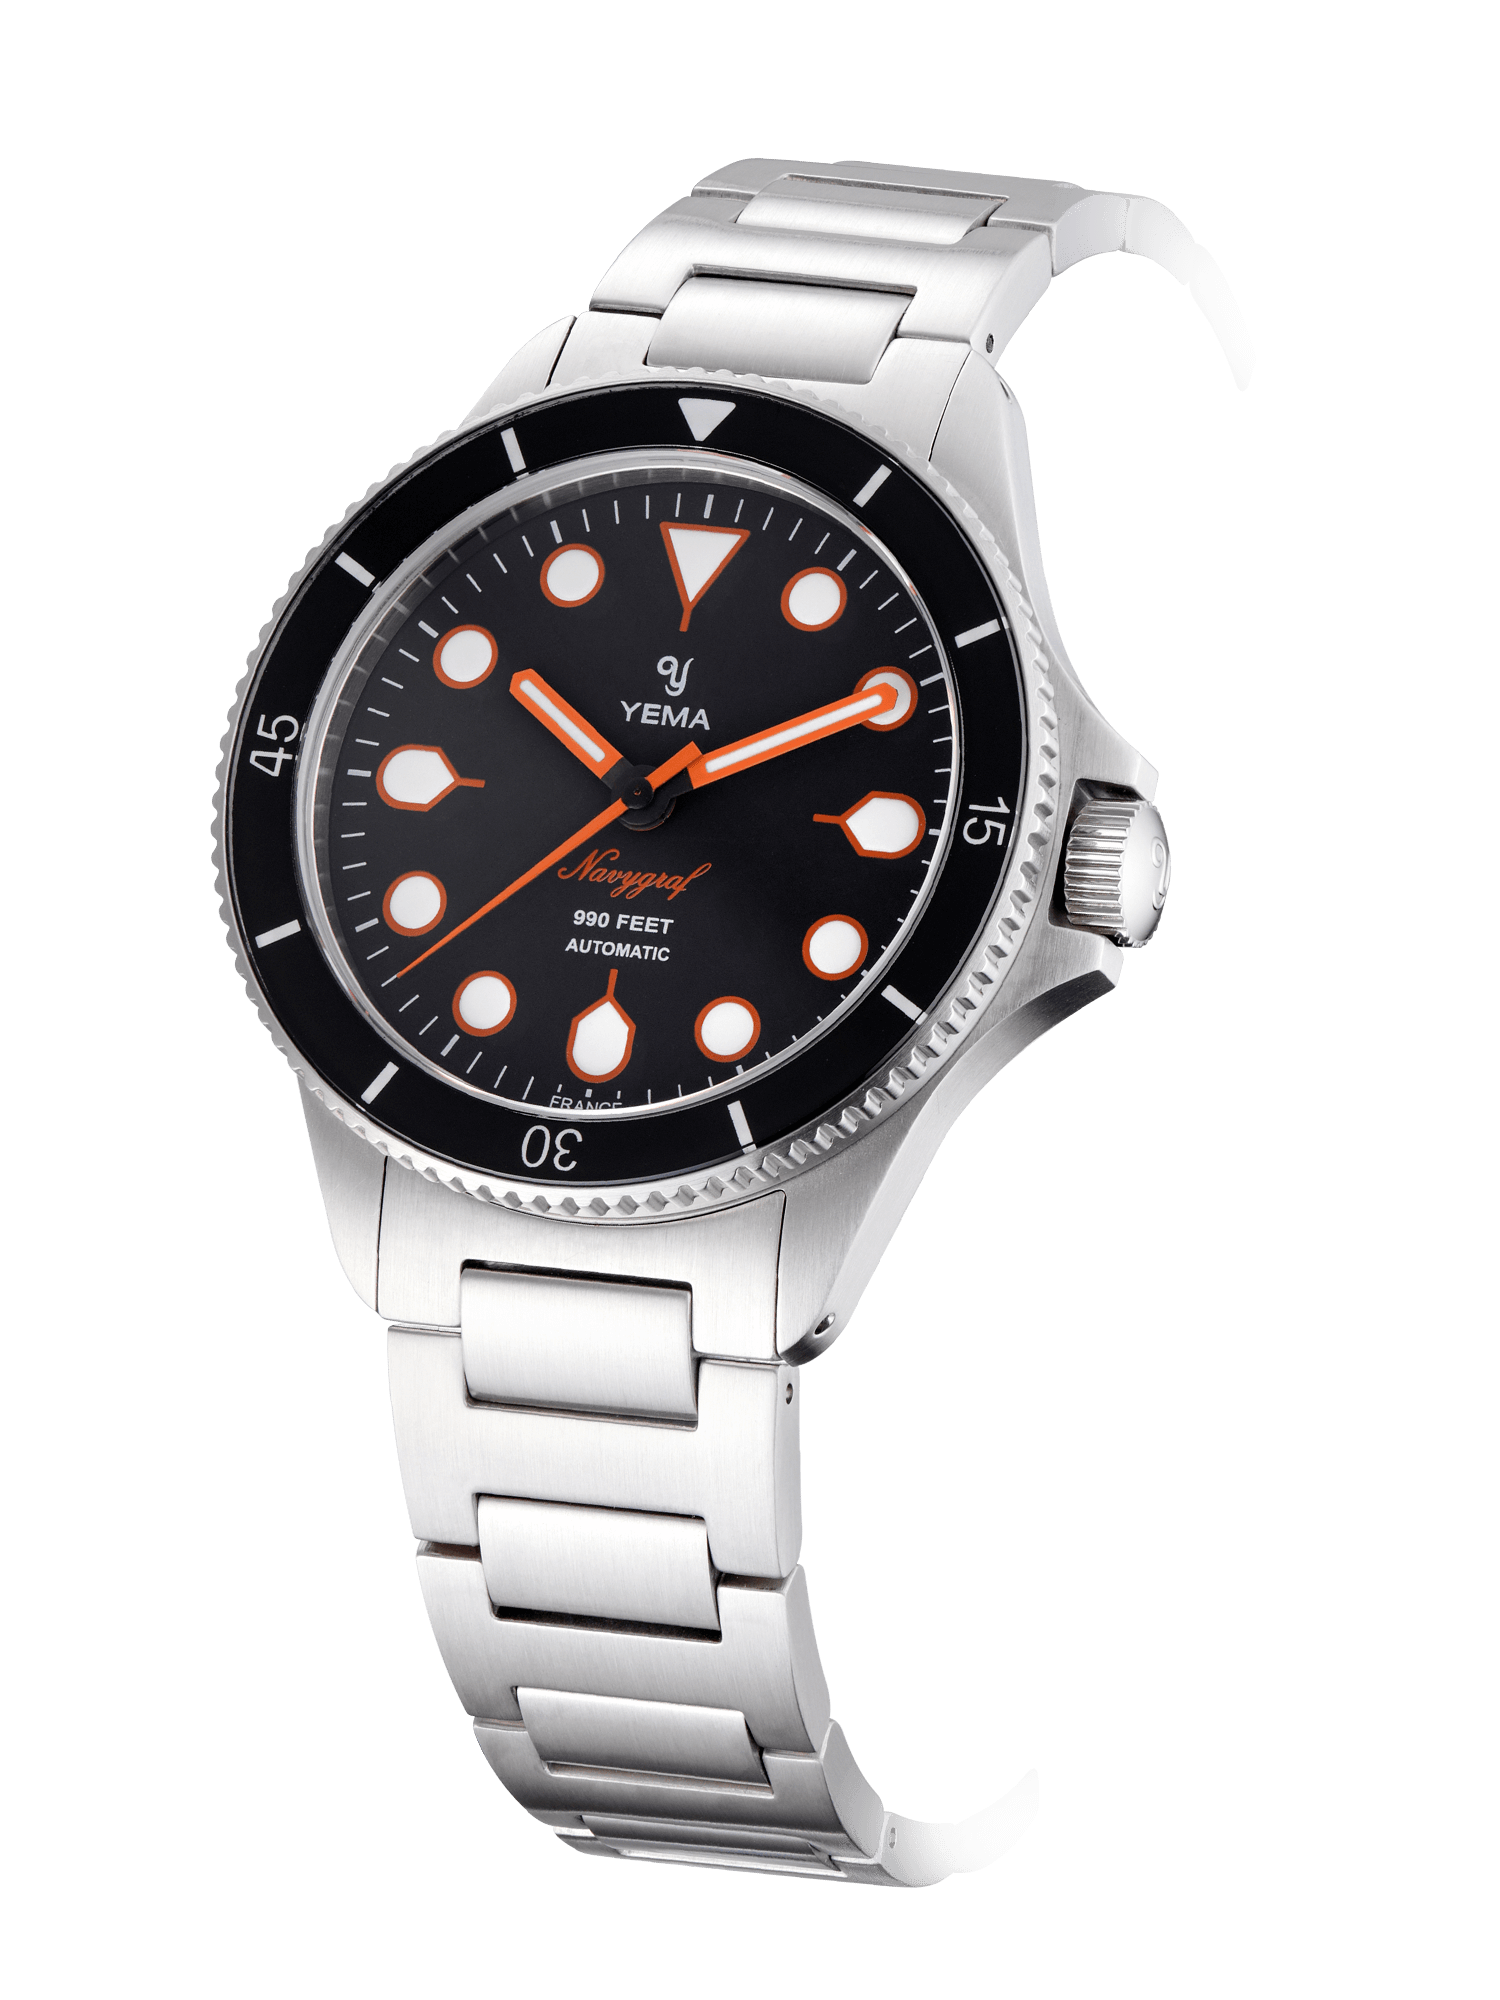 YEMA Navygraf Maxi Dial, domed sapphire crystal, steel bracelet, flashy orange hands, steel bracelet